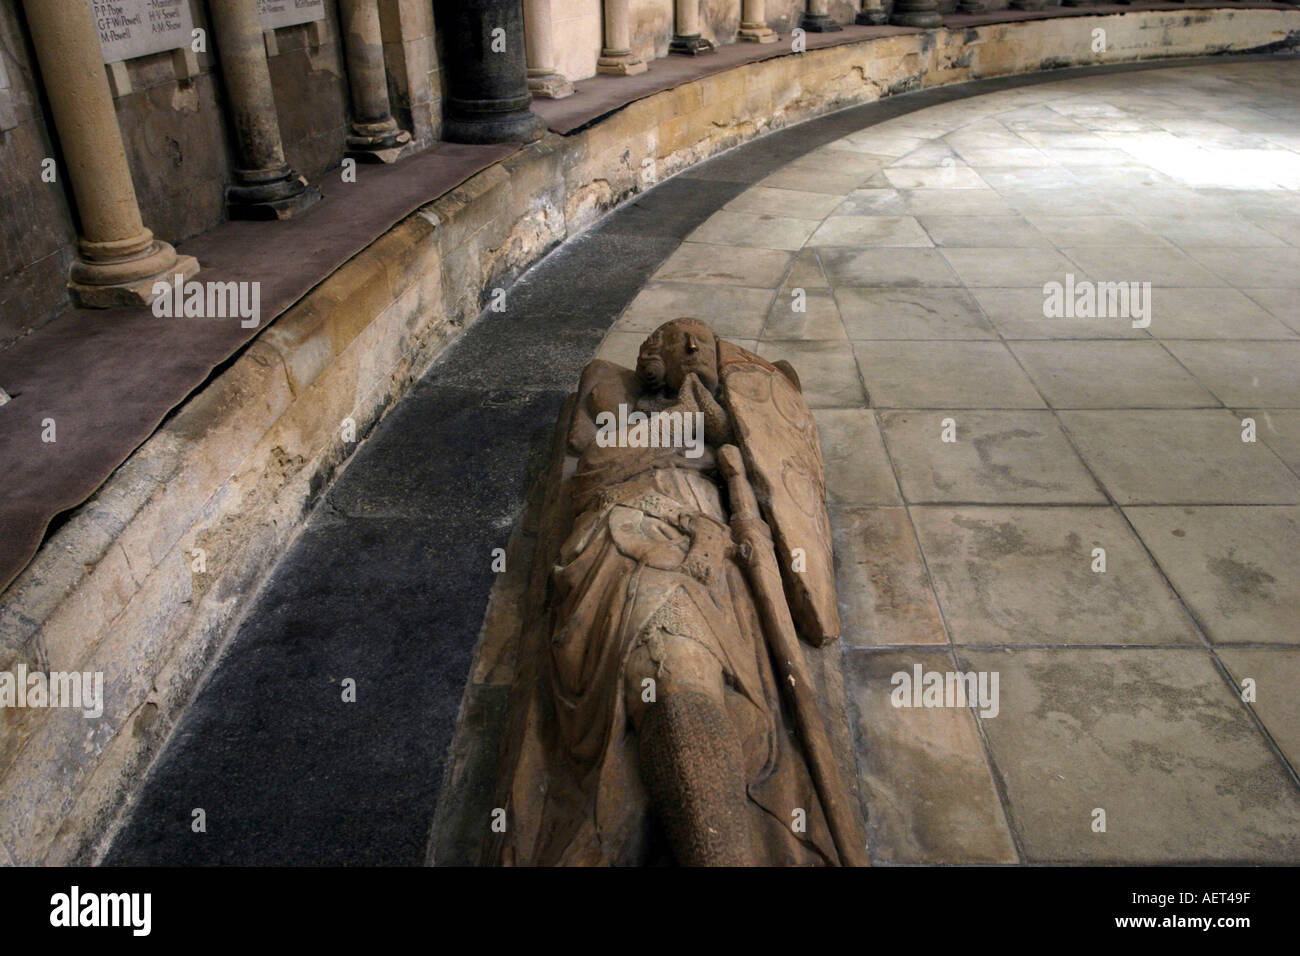 Statue of one of the Knights Templar in the Temple church London England - Stock Image